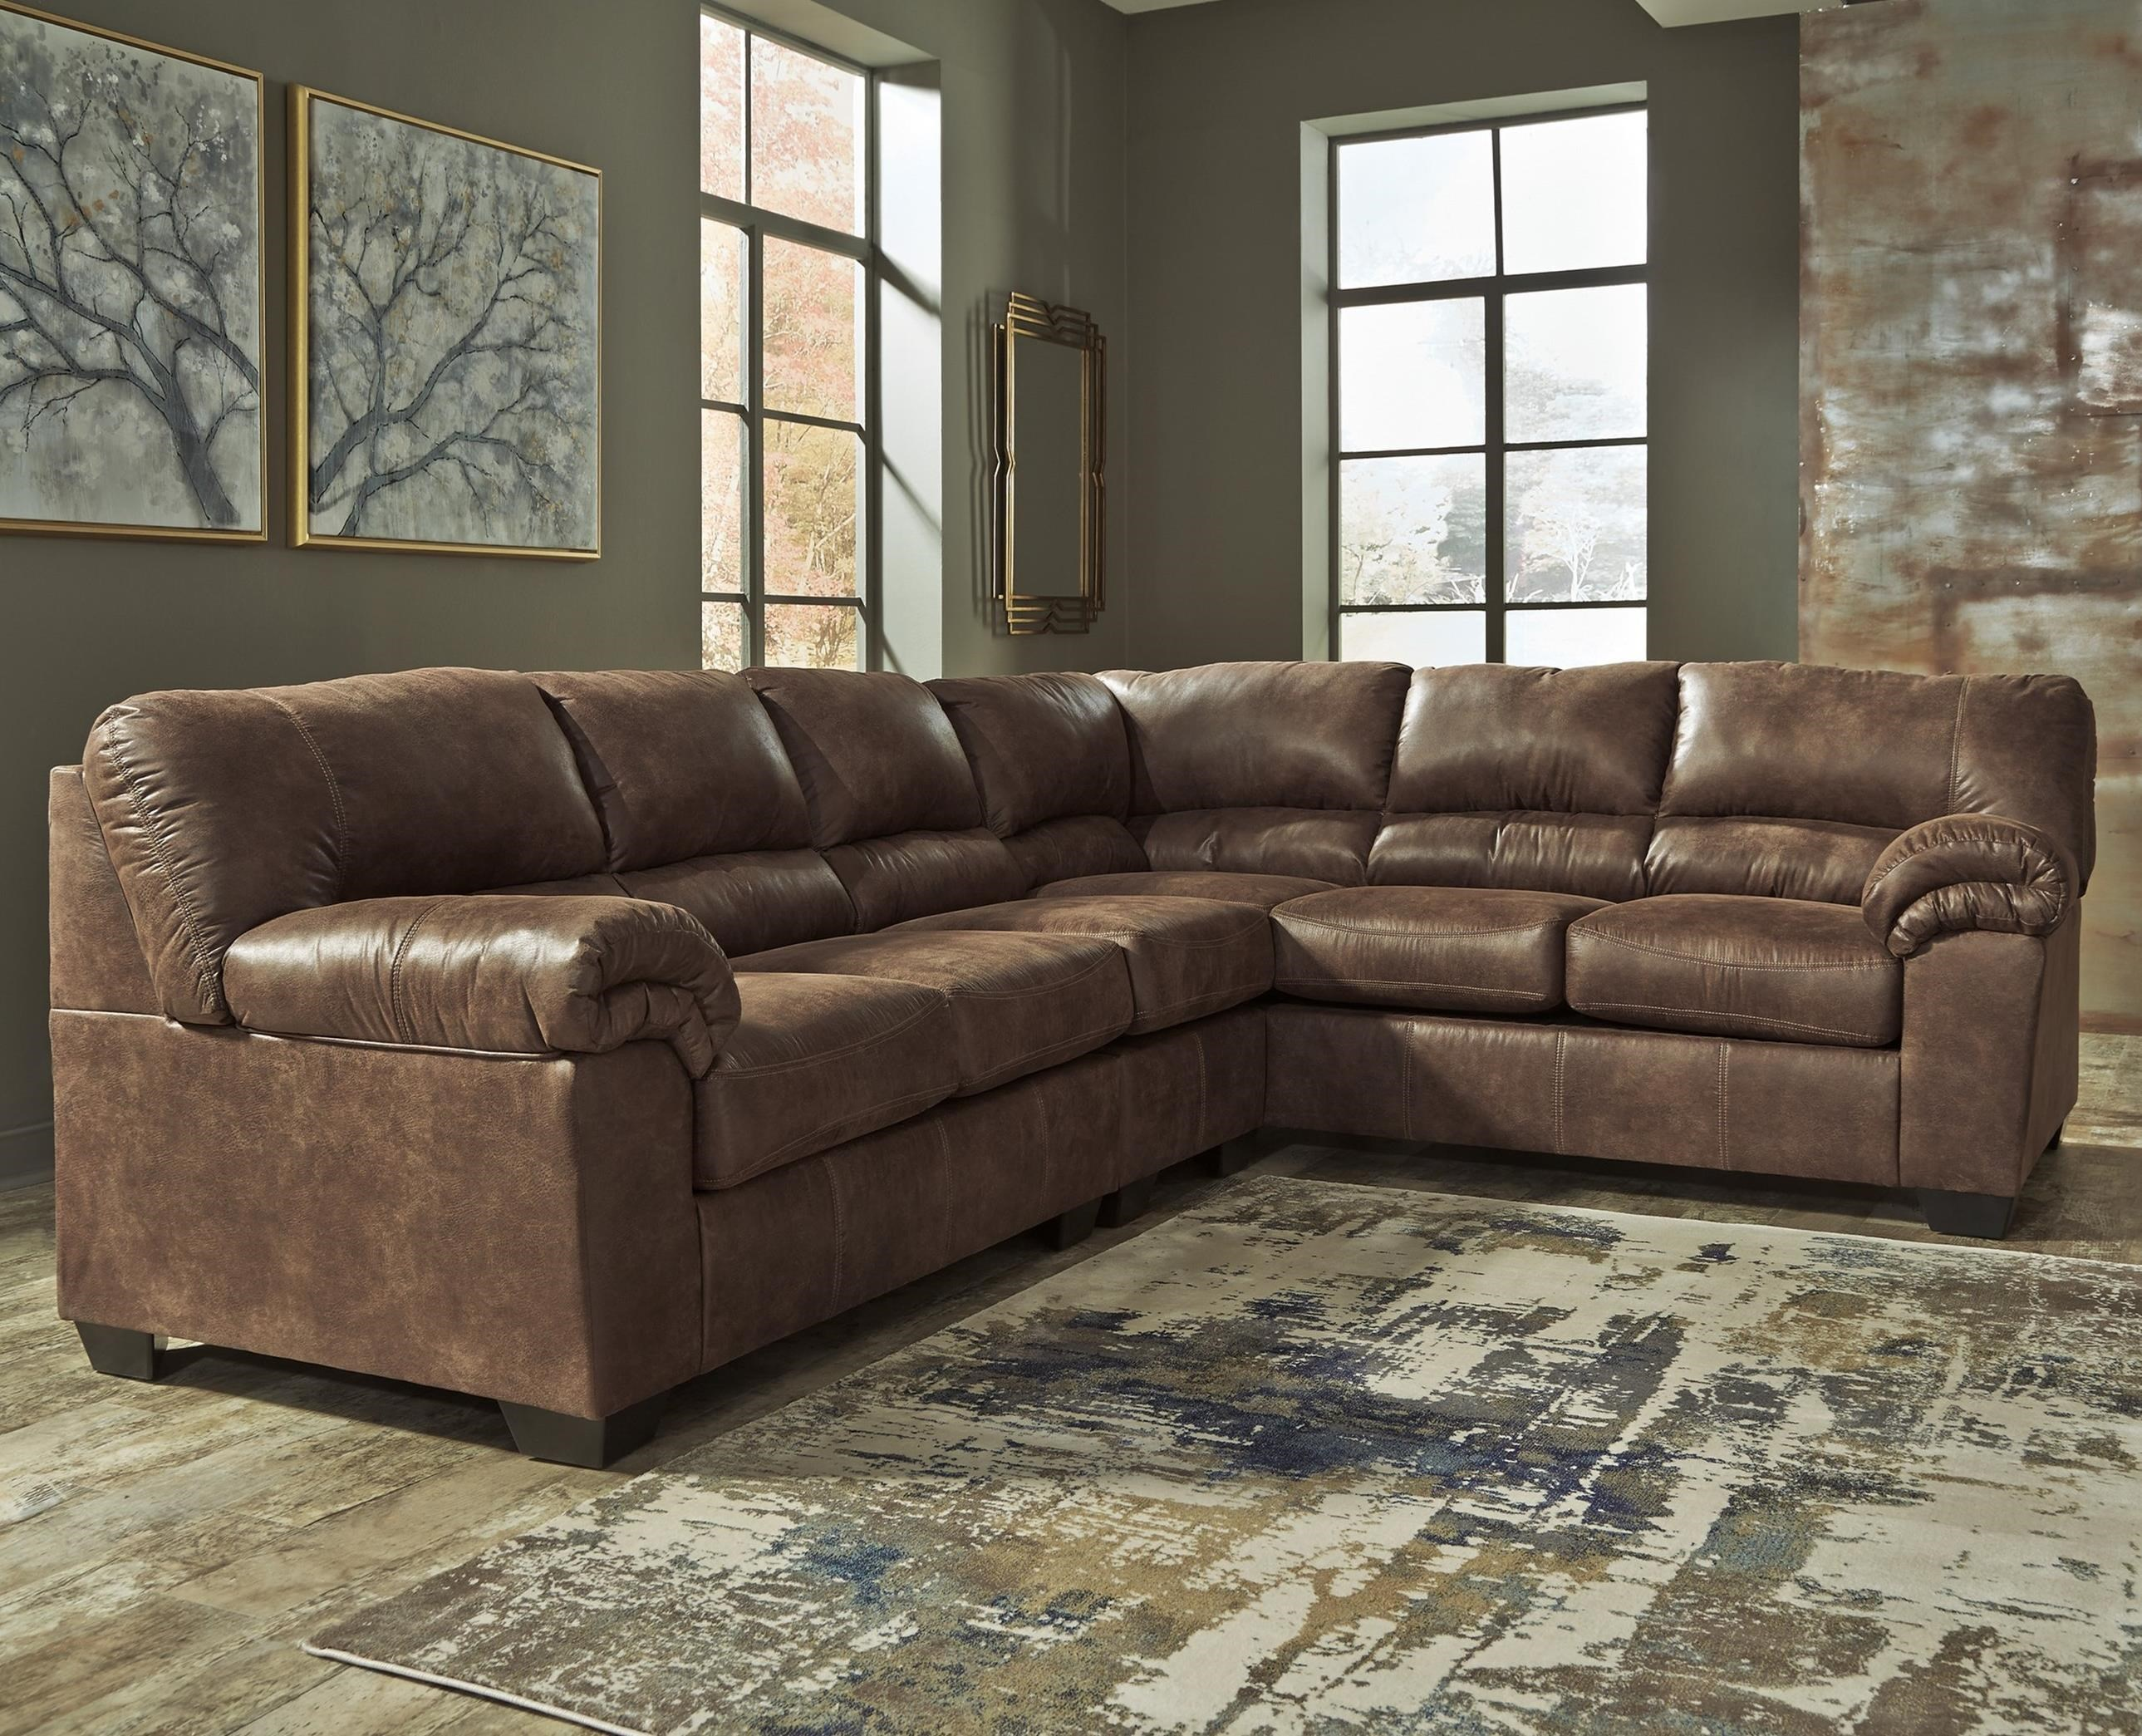 Signature Design by Ashley Bladen 3-Piece Faux Leather Sectional  sc 1 st  Wayside Furniture : 3 piece leather sectional - Sectionals, Sofas & Couches